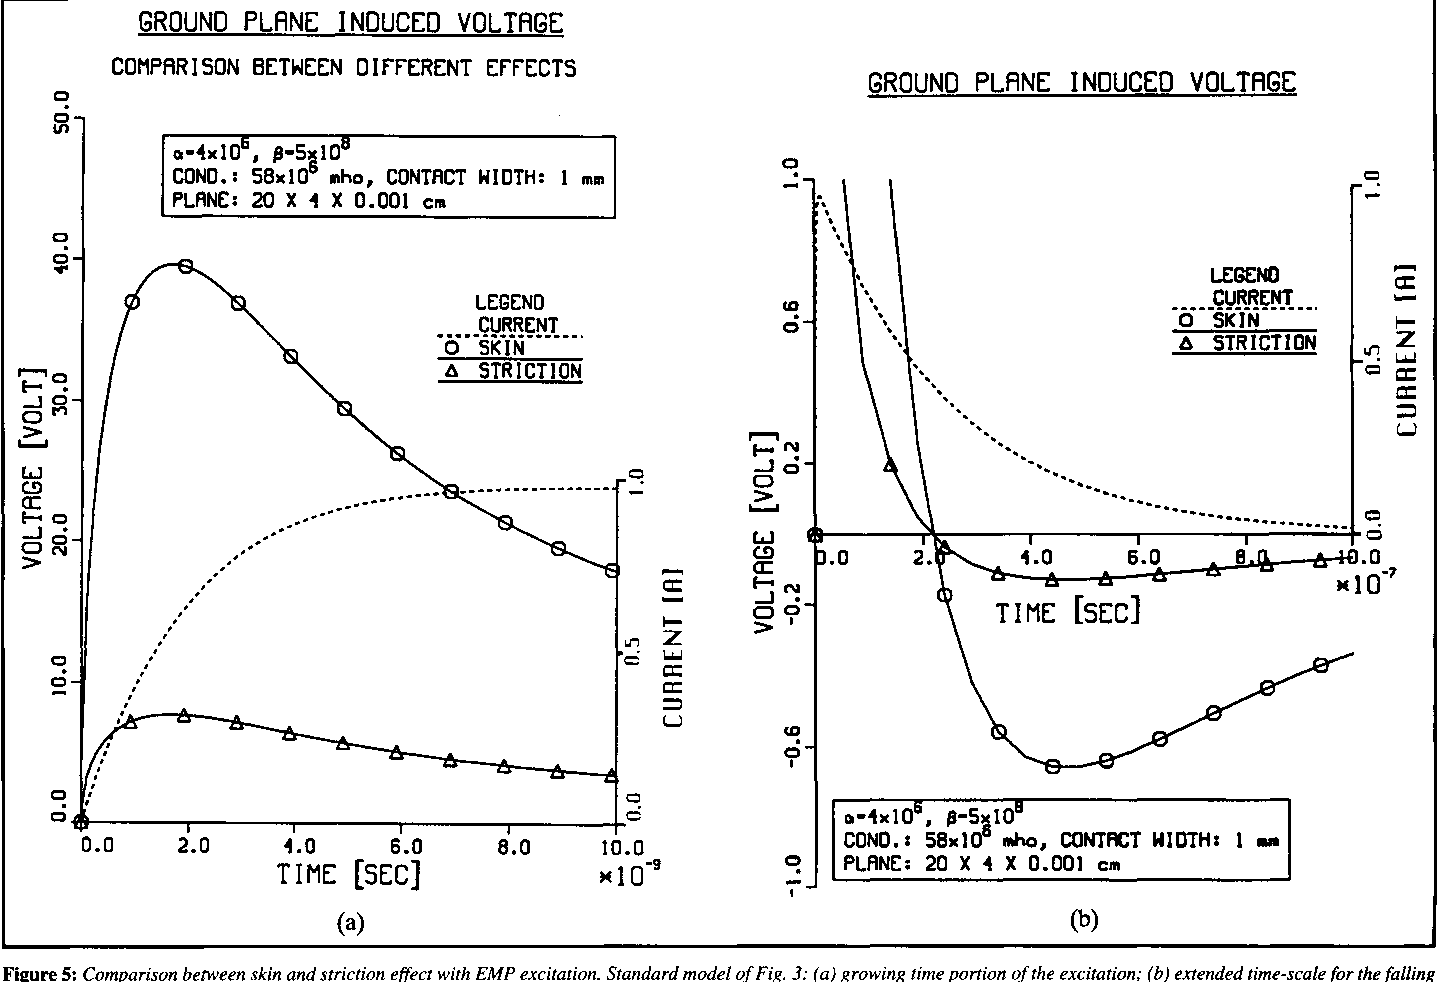 Figure 5: Comparison between skin and striction effect with EMP excitation. Standard model of Fig. 3: (a) growing time portion of the excitation; (b) extended time-scale for the falling part of the excitation.